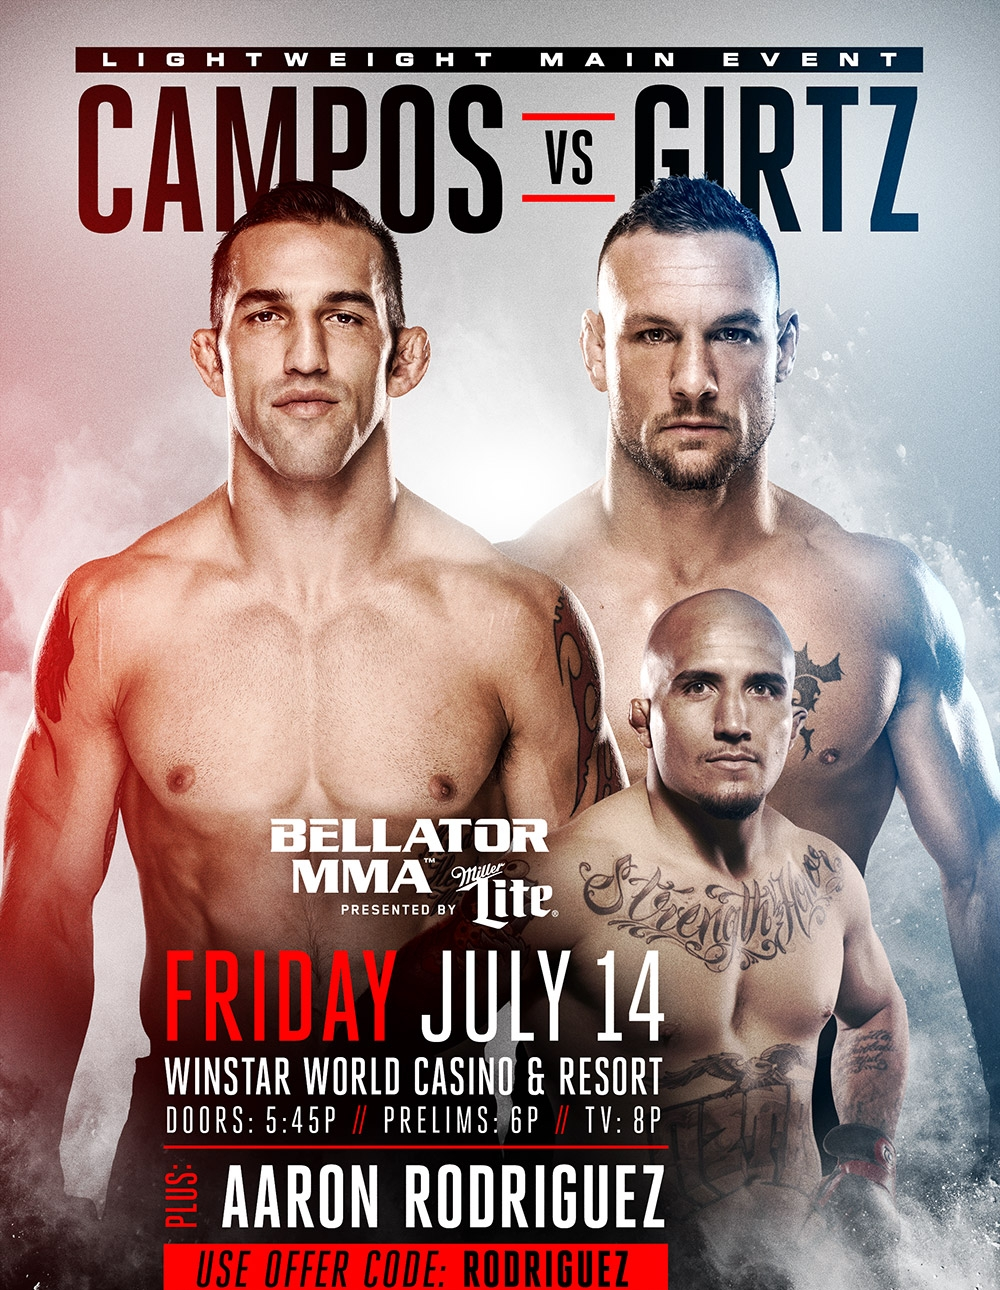 BELLATOR MMA 181 - TKO COMBAT SPORTS - JULY 14, 2017  WINSTAR OK